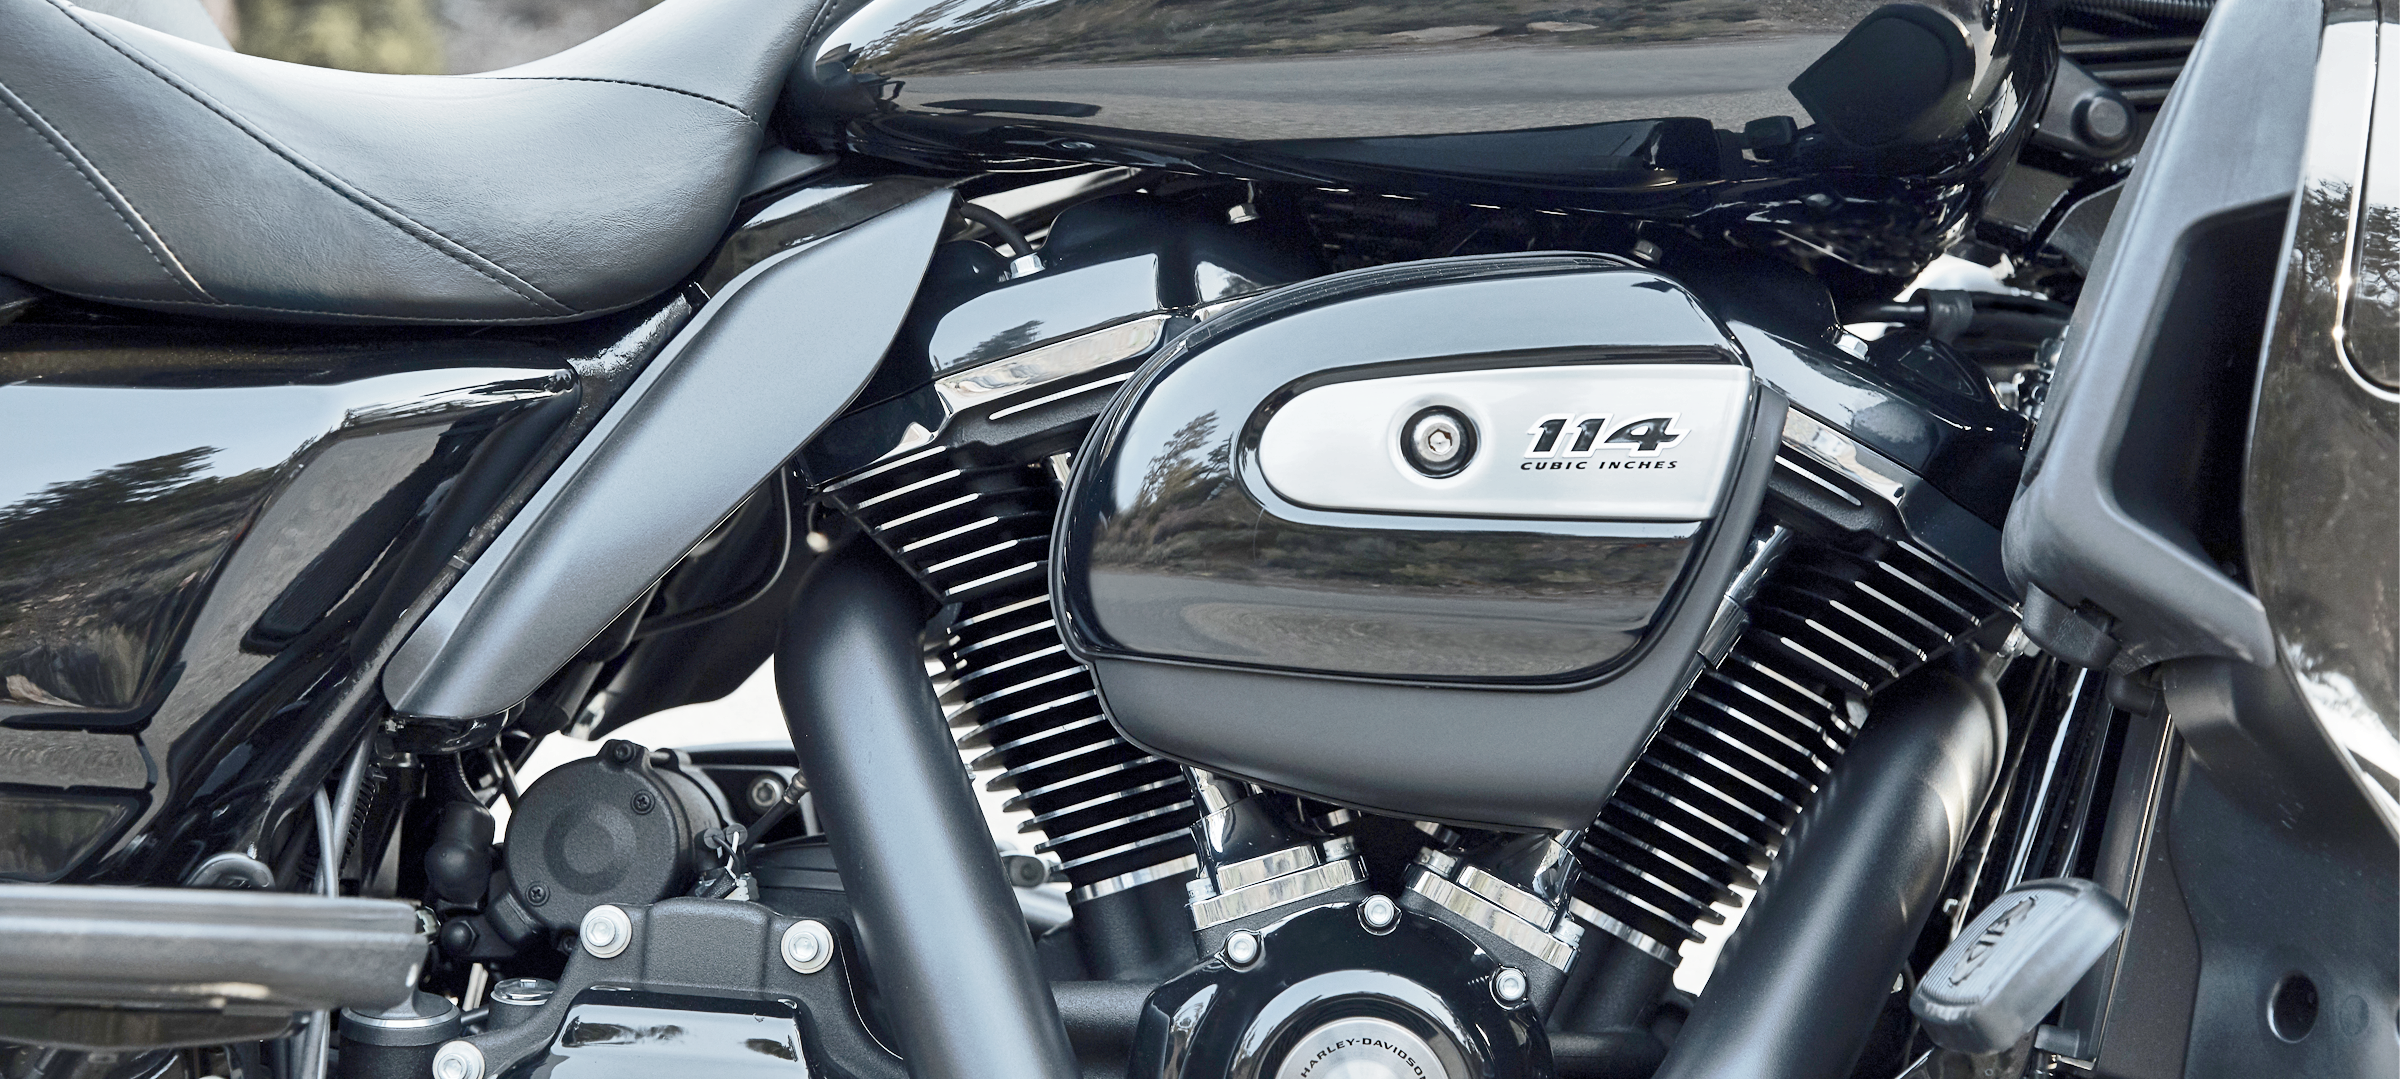 Storage engines for cars and motorcycles